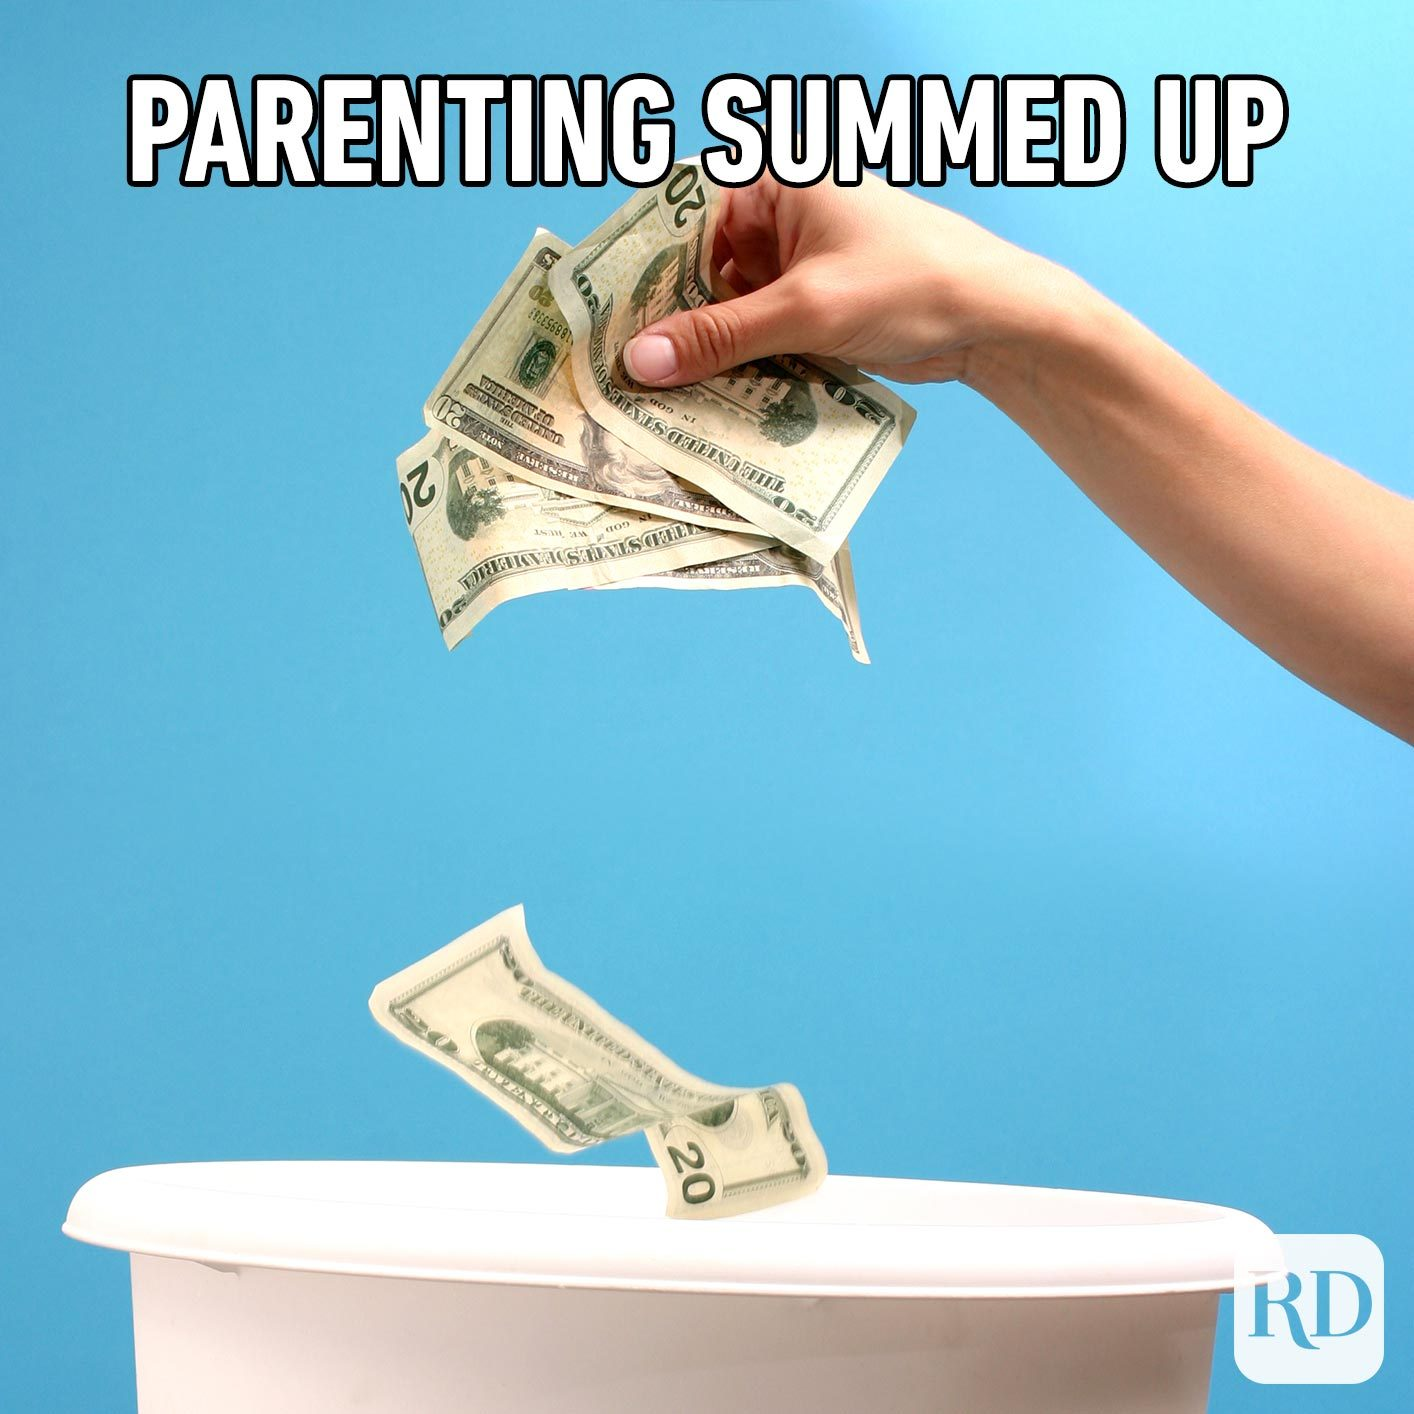 Throwing money in garbage. MEME TEXT: Parenting summed up